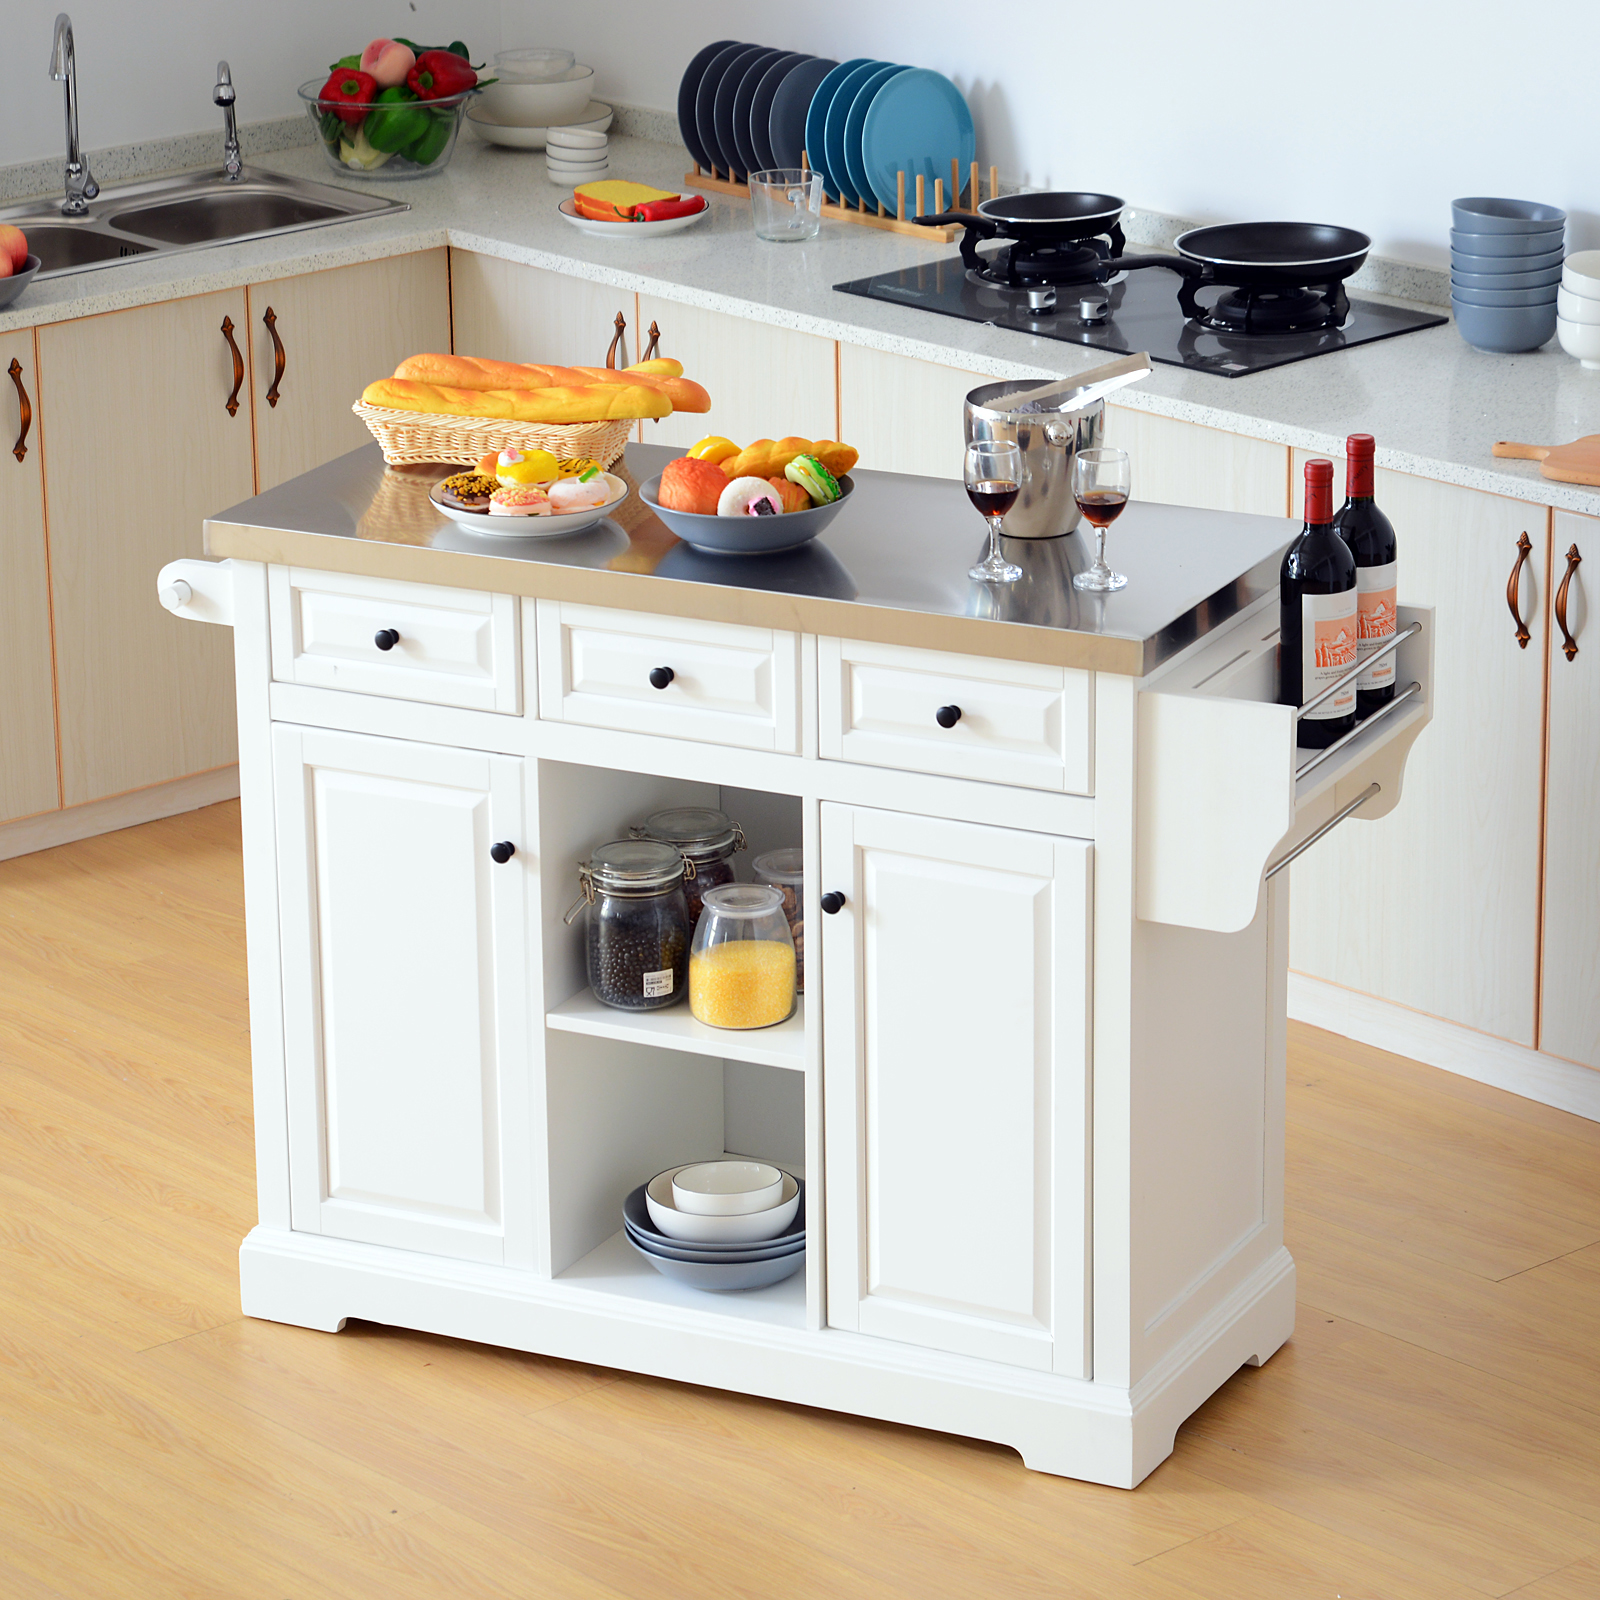 HomCom kitchen trolley with wheels with Drawers Wood Cabinet